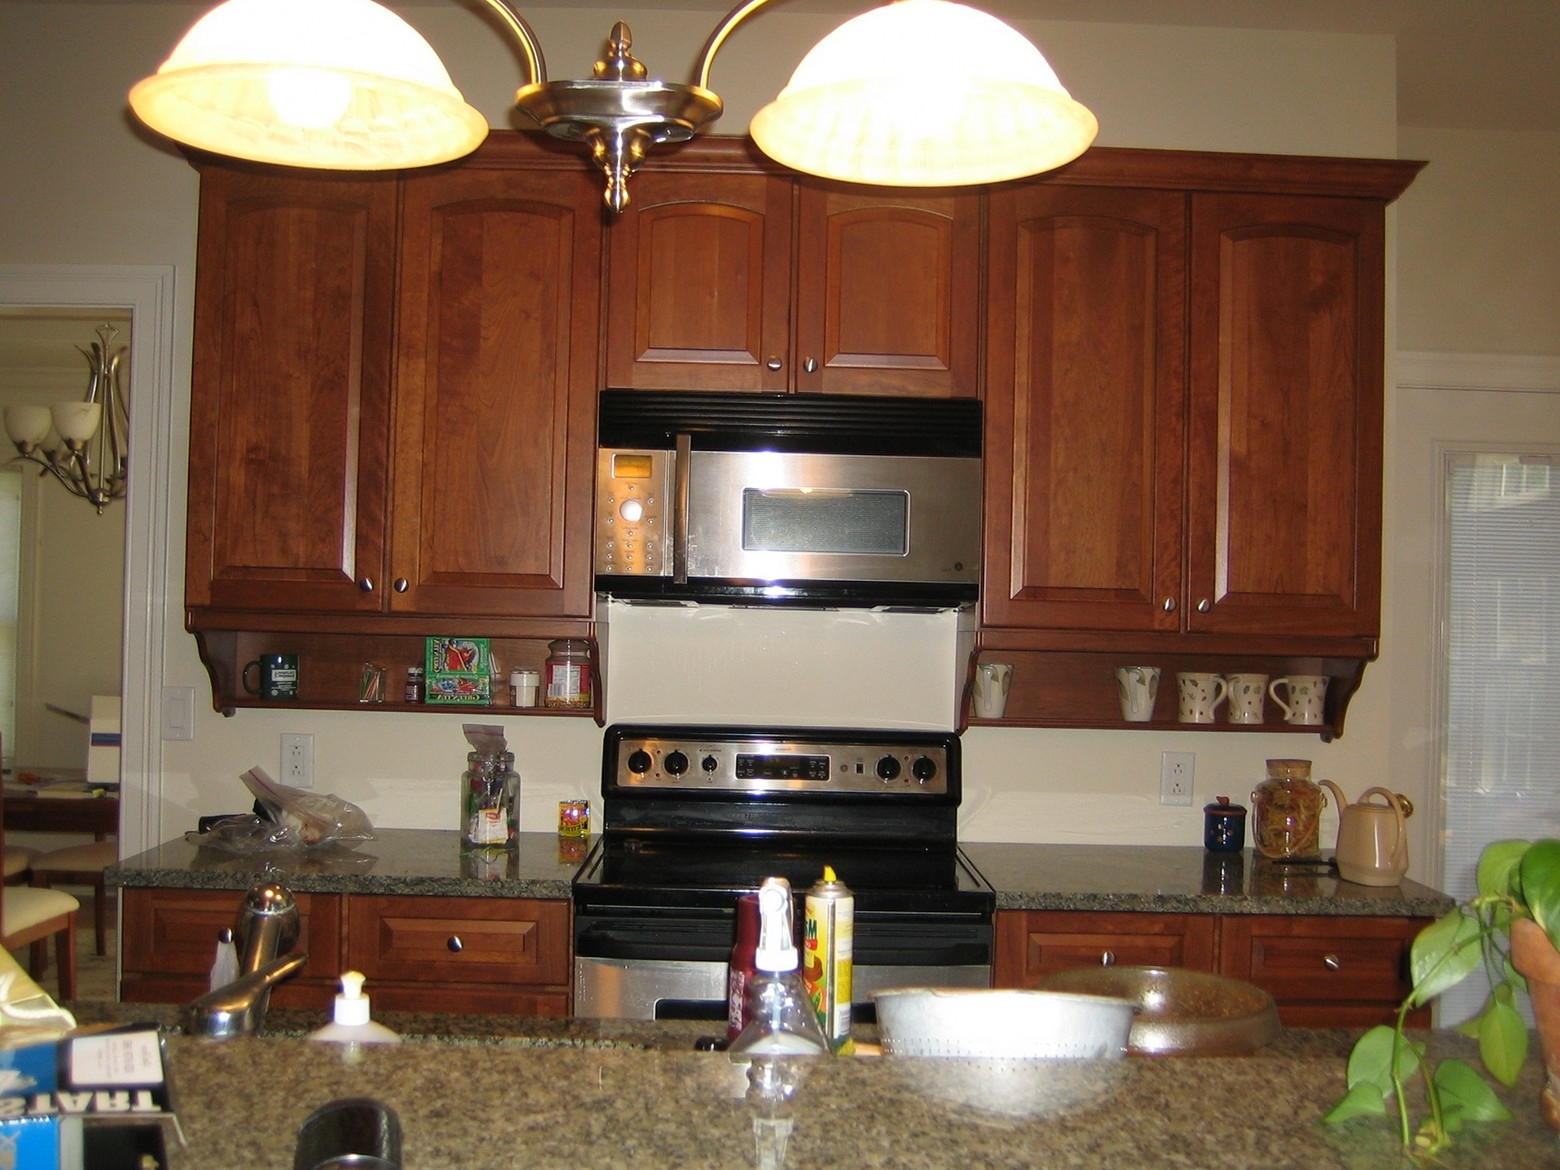 Kitchen Cabinets With Artistic Pendant Lamp (View 20 of 38)